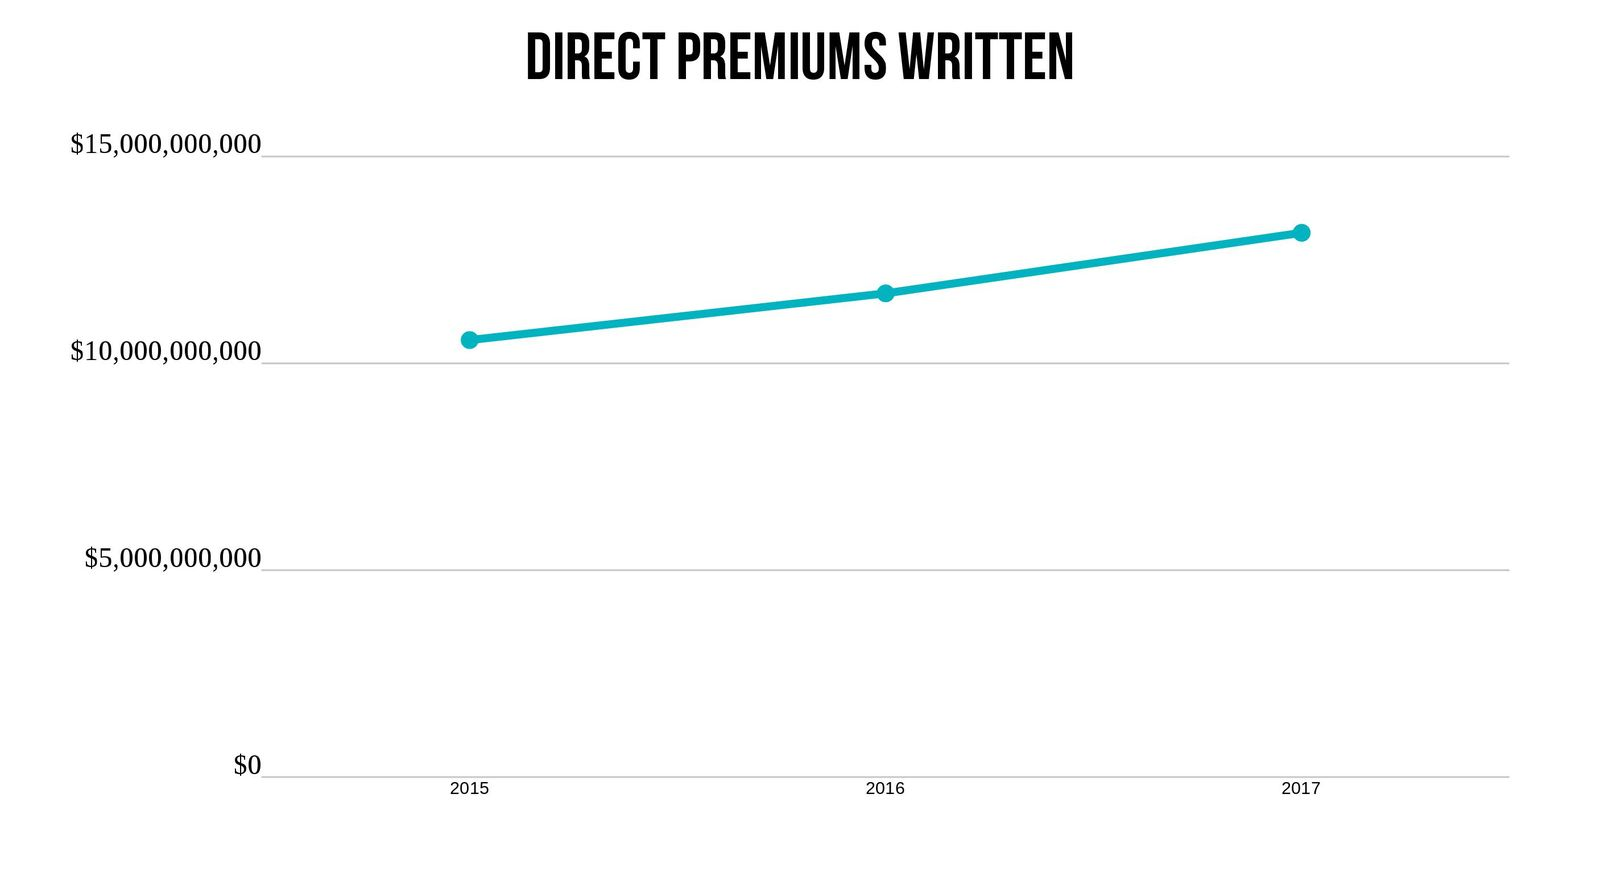 USAA premiums written trend